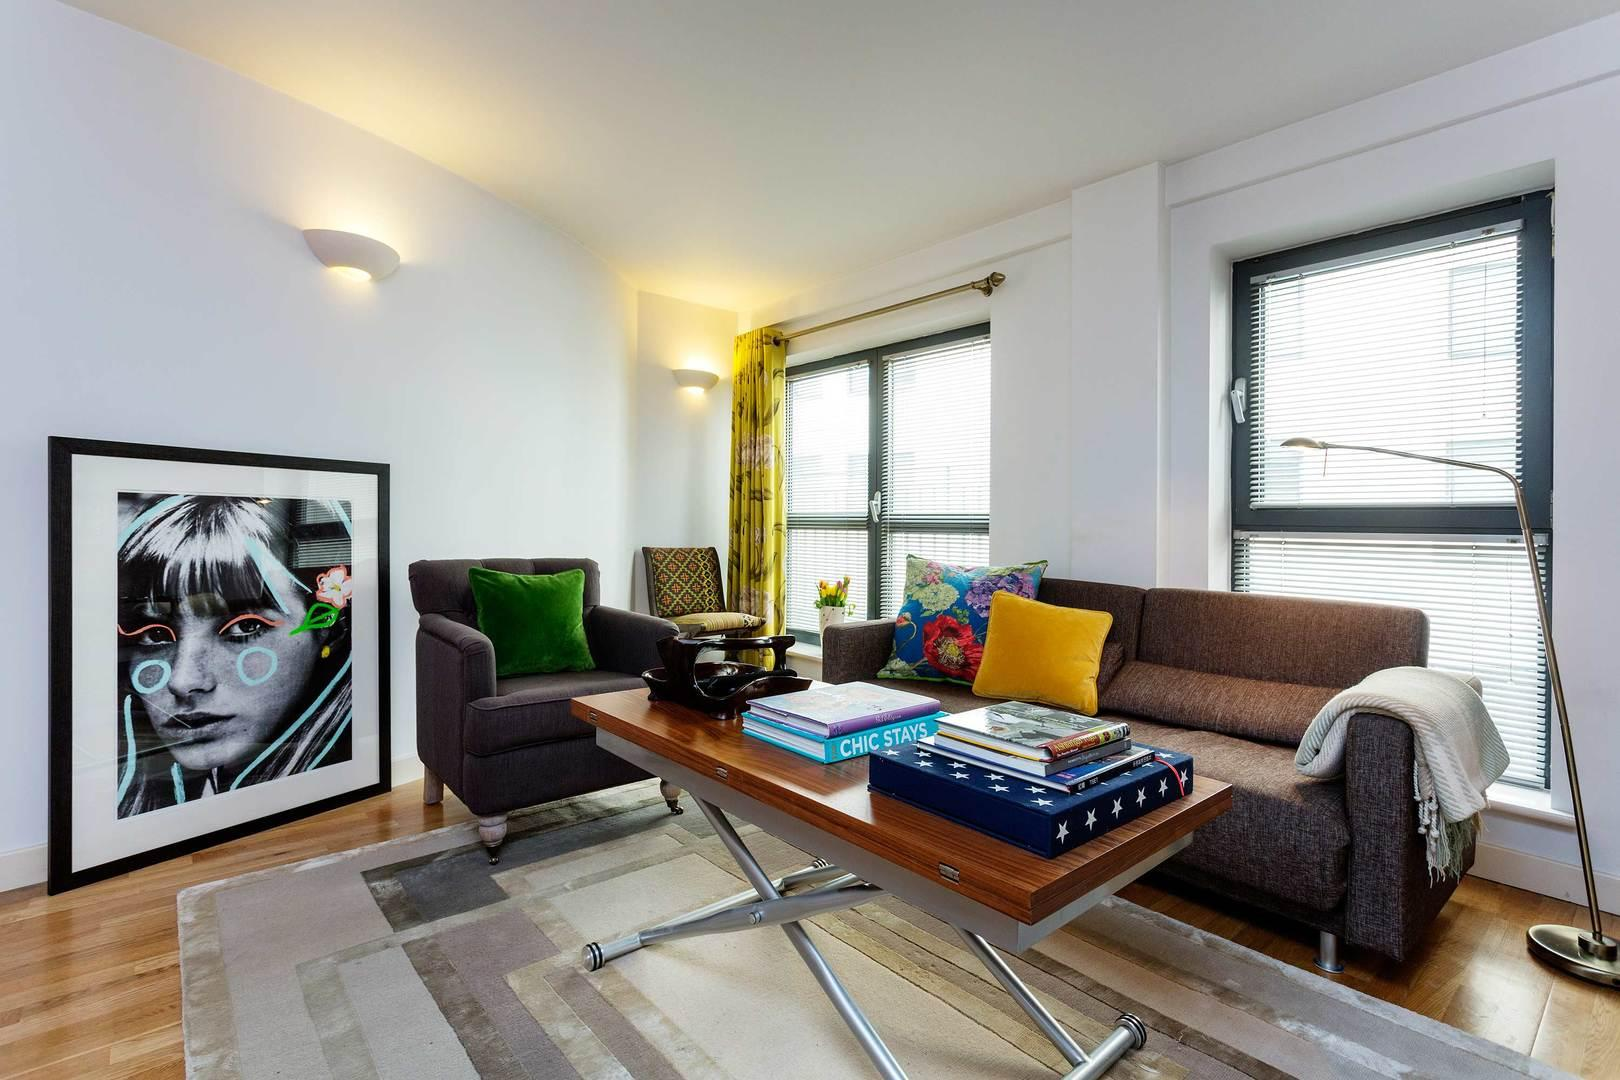 Property Image 2 - Contemporary Colourful Apartment in Trendy Shoreditch